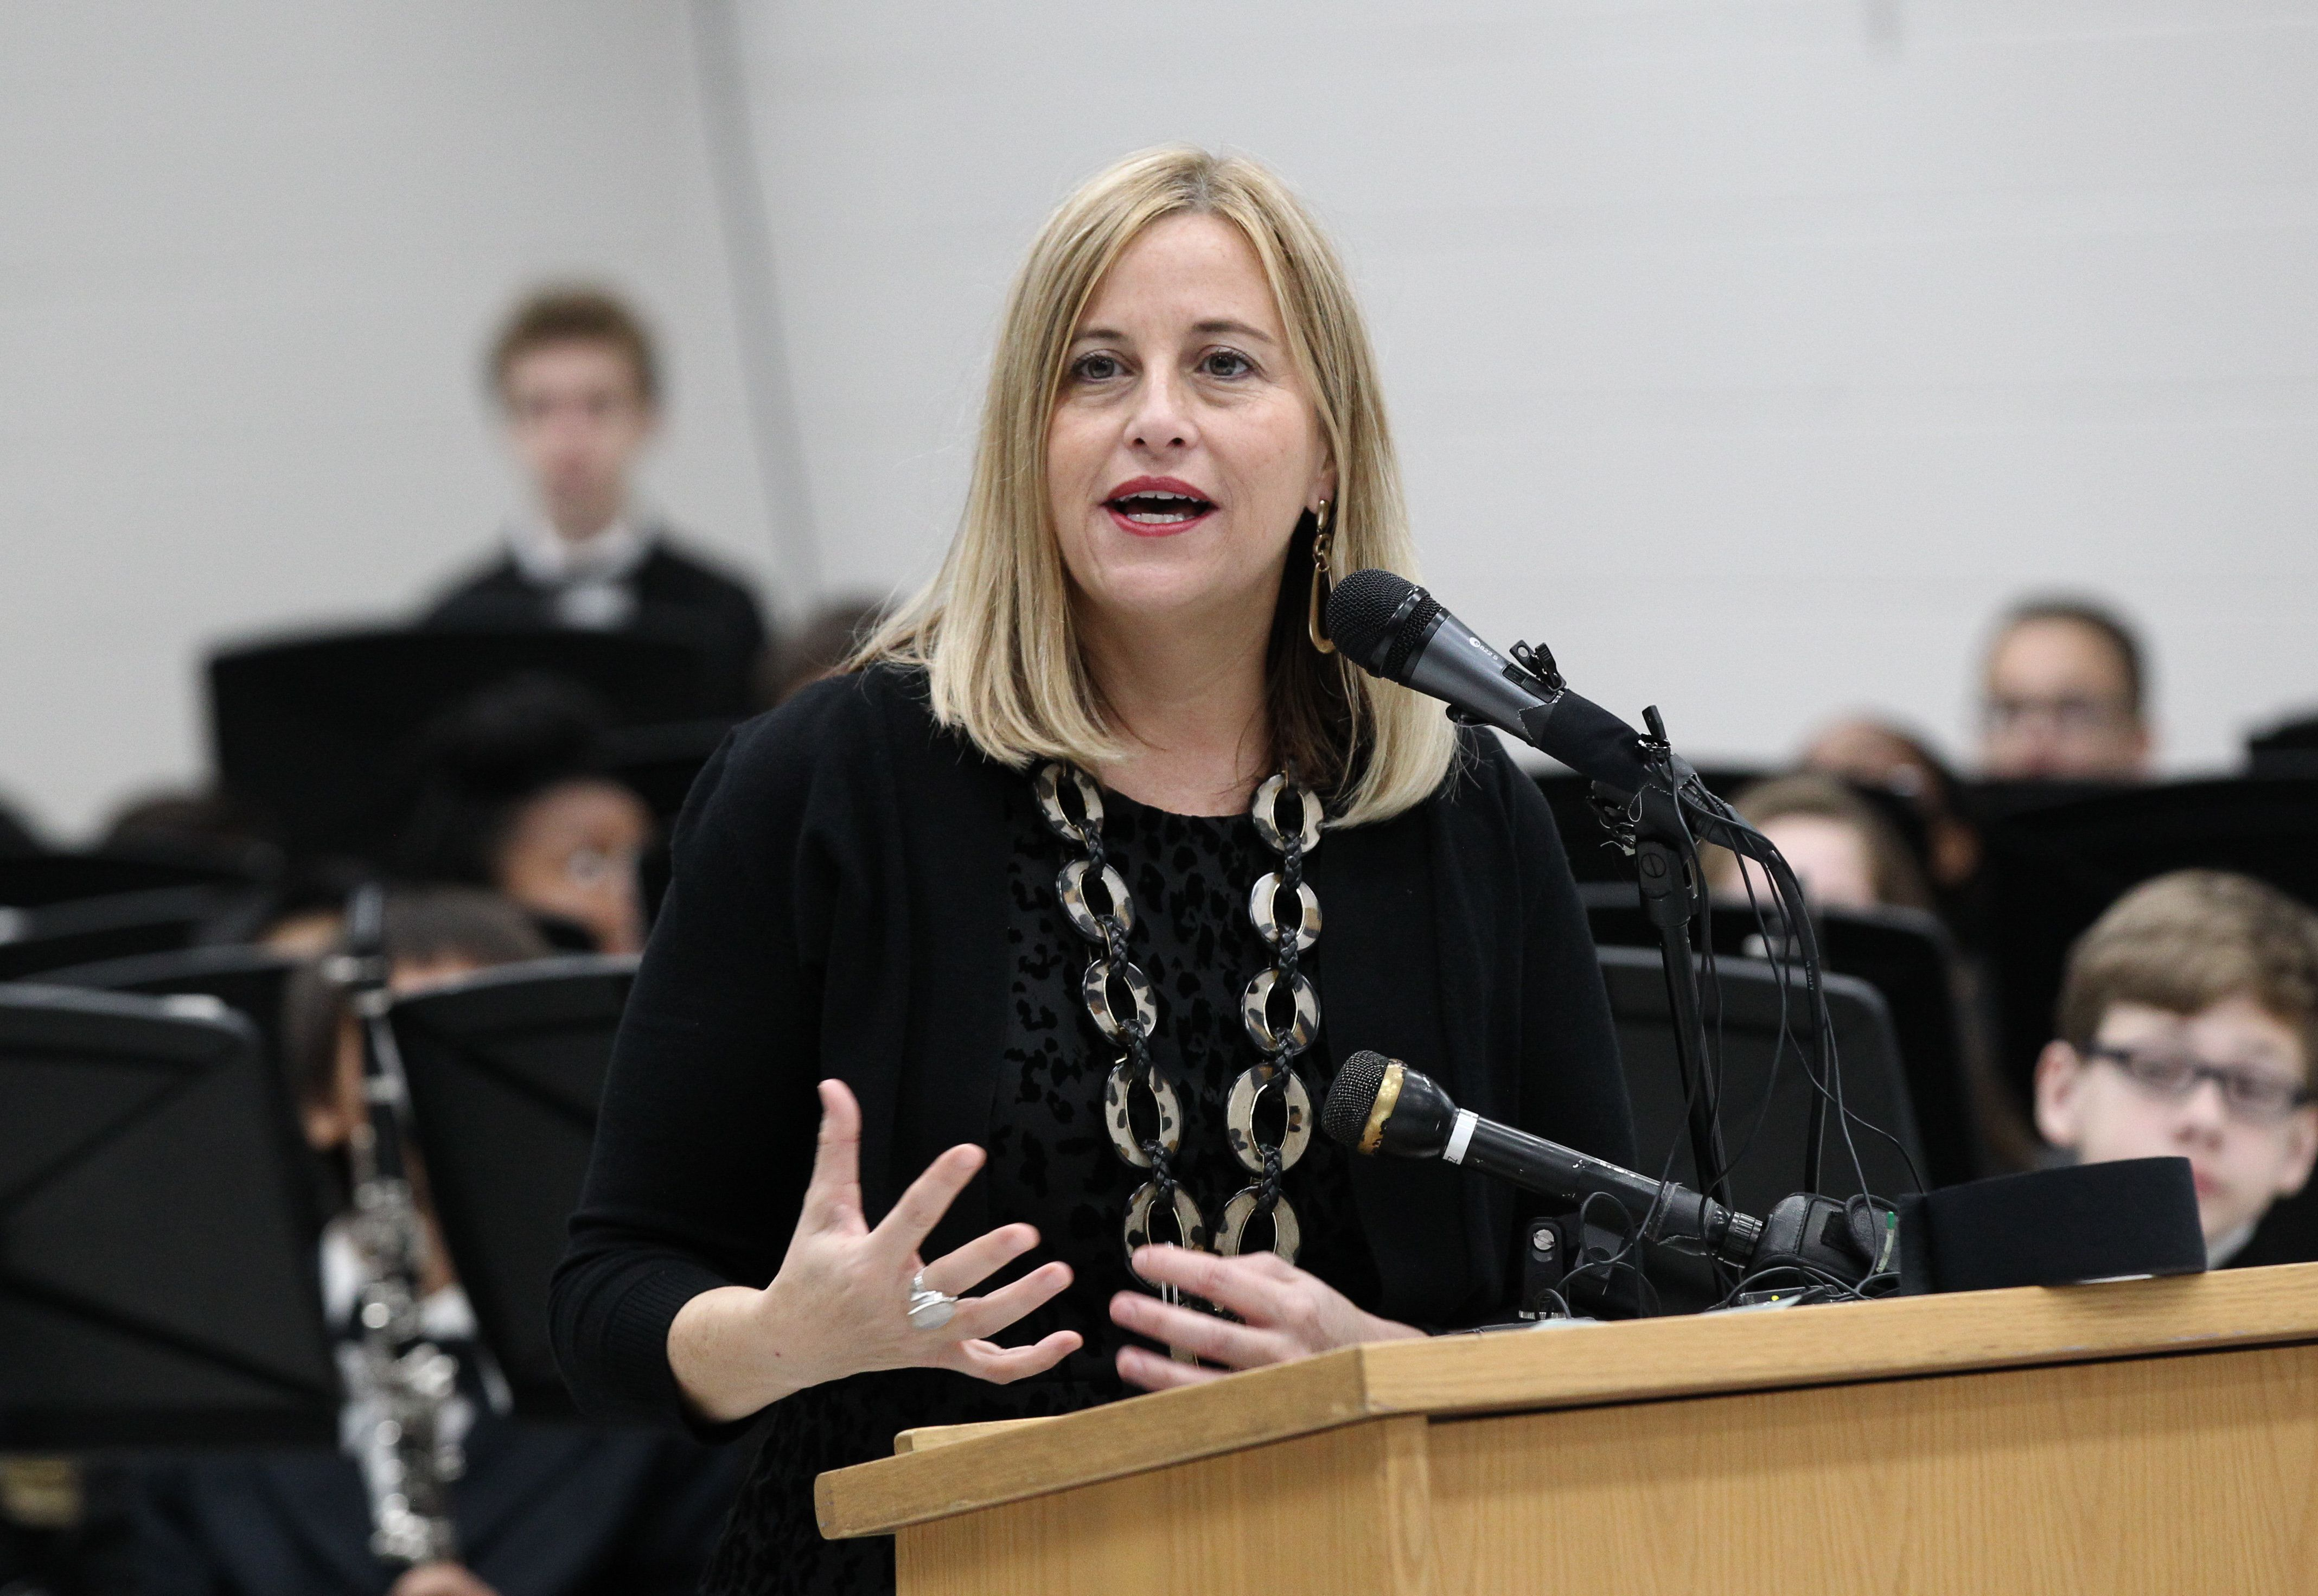 NASHVILLE, TN - DECEMBER 06:  Nashville Mayor Megan Barry speaks during the CMA Foundation's Announcement of a One Million dollar donation to the Metro Nashville public schools 'Music makes us' progam at Oliver Middle School on December 6, 2016 in Nashville, Tennessee.  (Photo by Terry Wyatt/Getty Images)